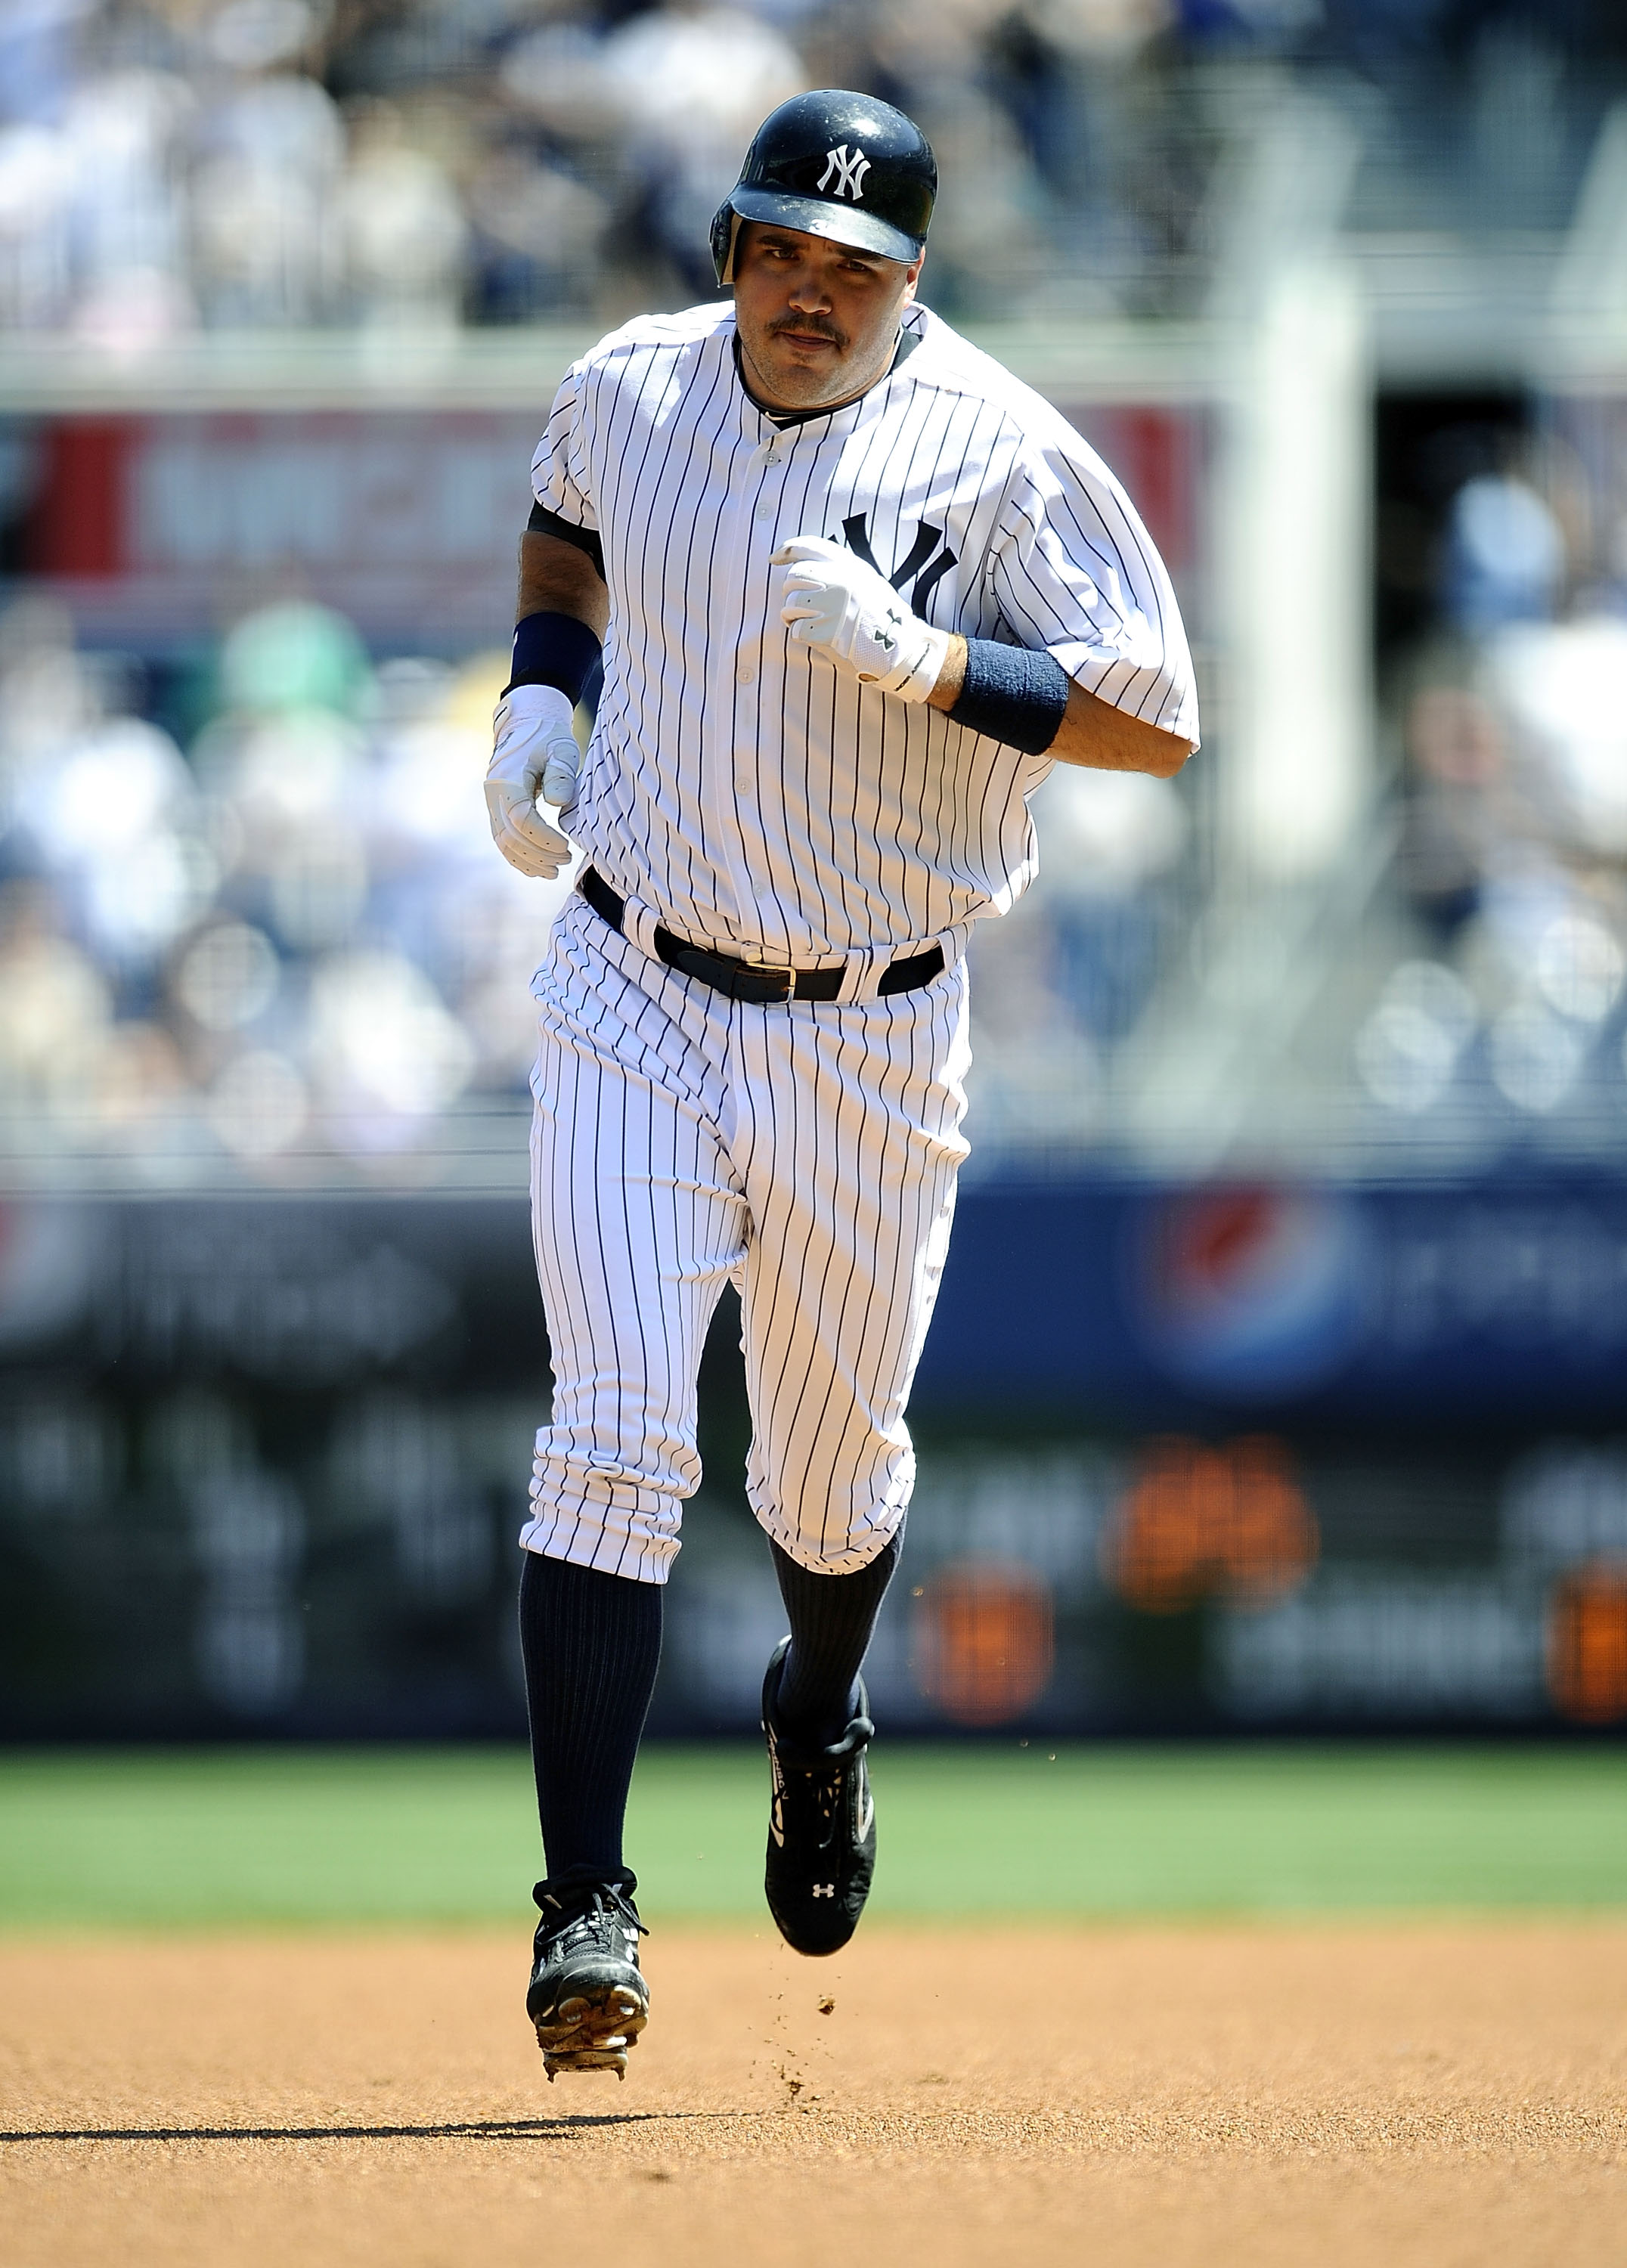 NEW YORK - MAY 05:  Nick Johnson #36 of the New York Yankees rounds the bases on a solo home run against the Baltimore Orioles at Yankee Stadium on May 5, 2010 in the Bronx borough of New York City  (Photo by Jeff Zelevansky/Getty Images)